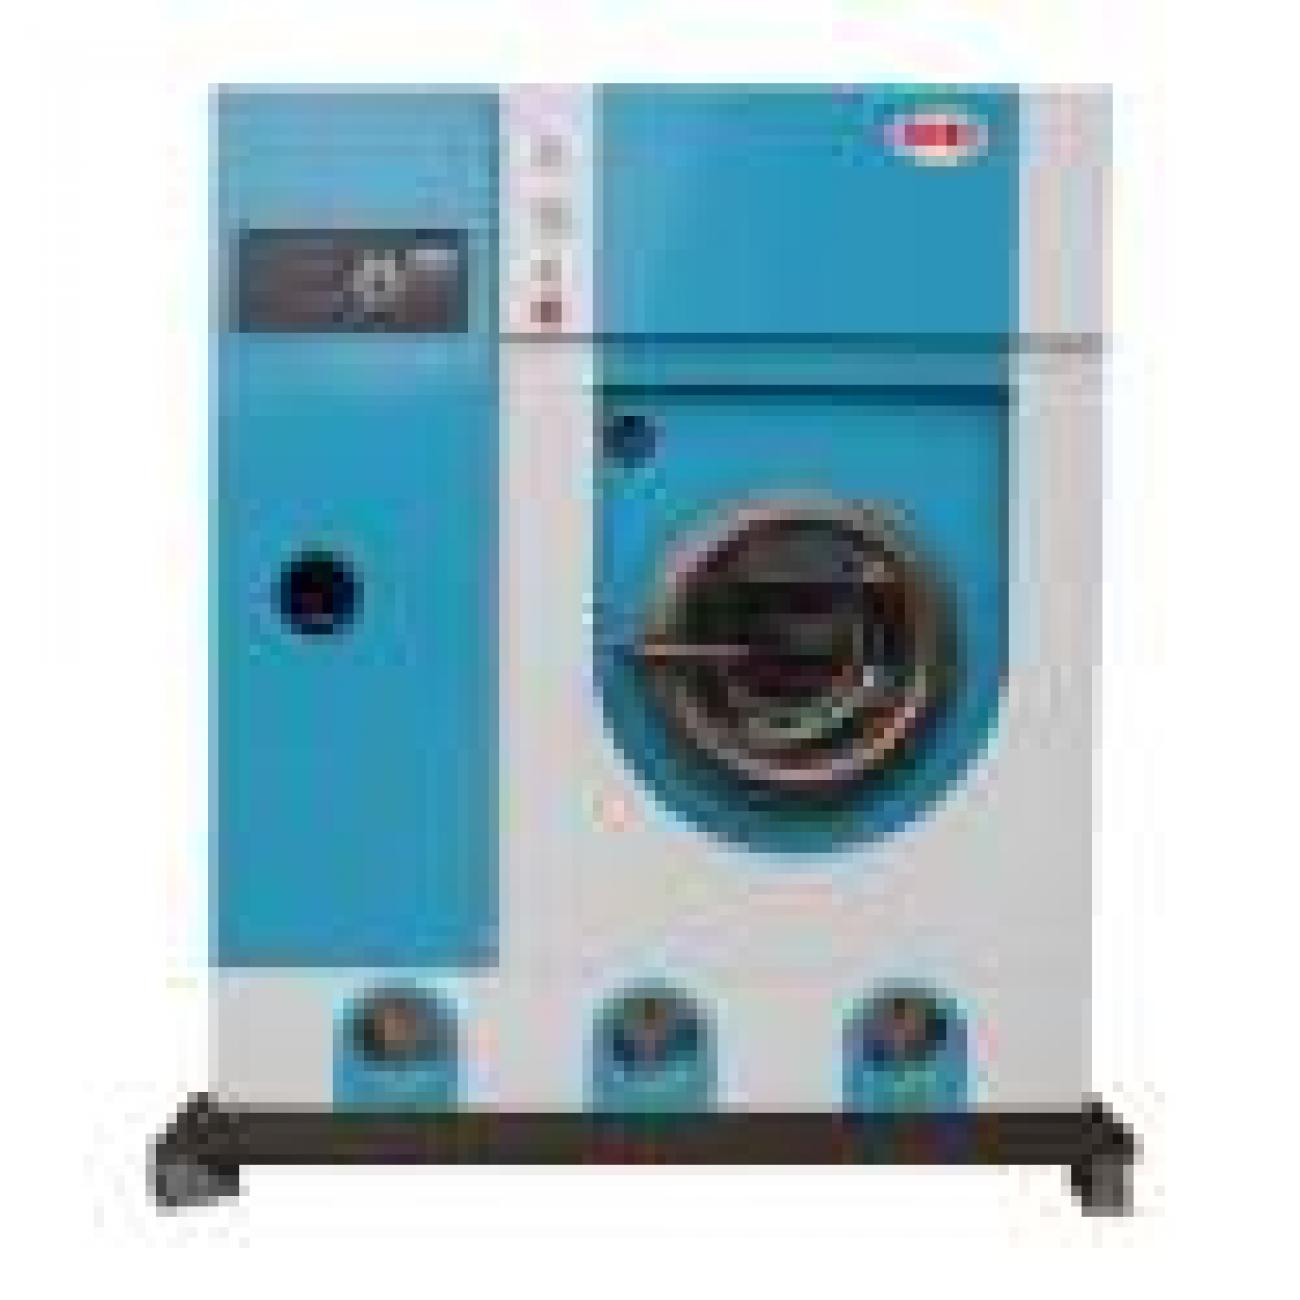 Dry_Cleaning_Machines